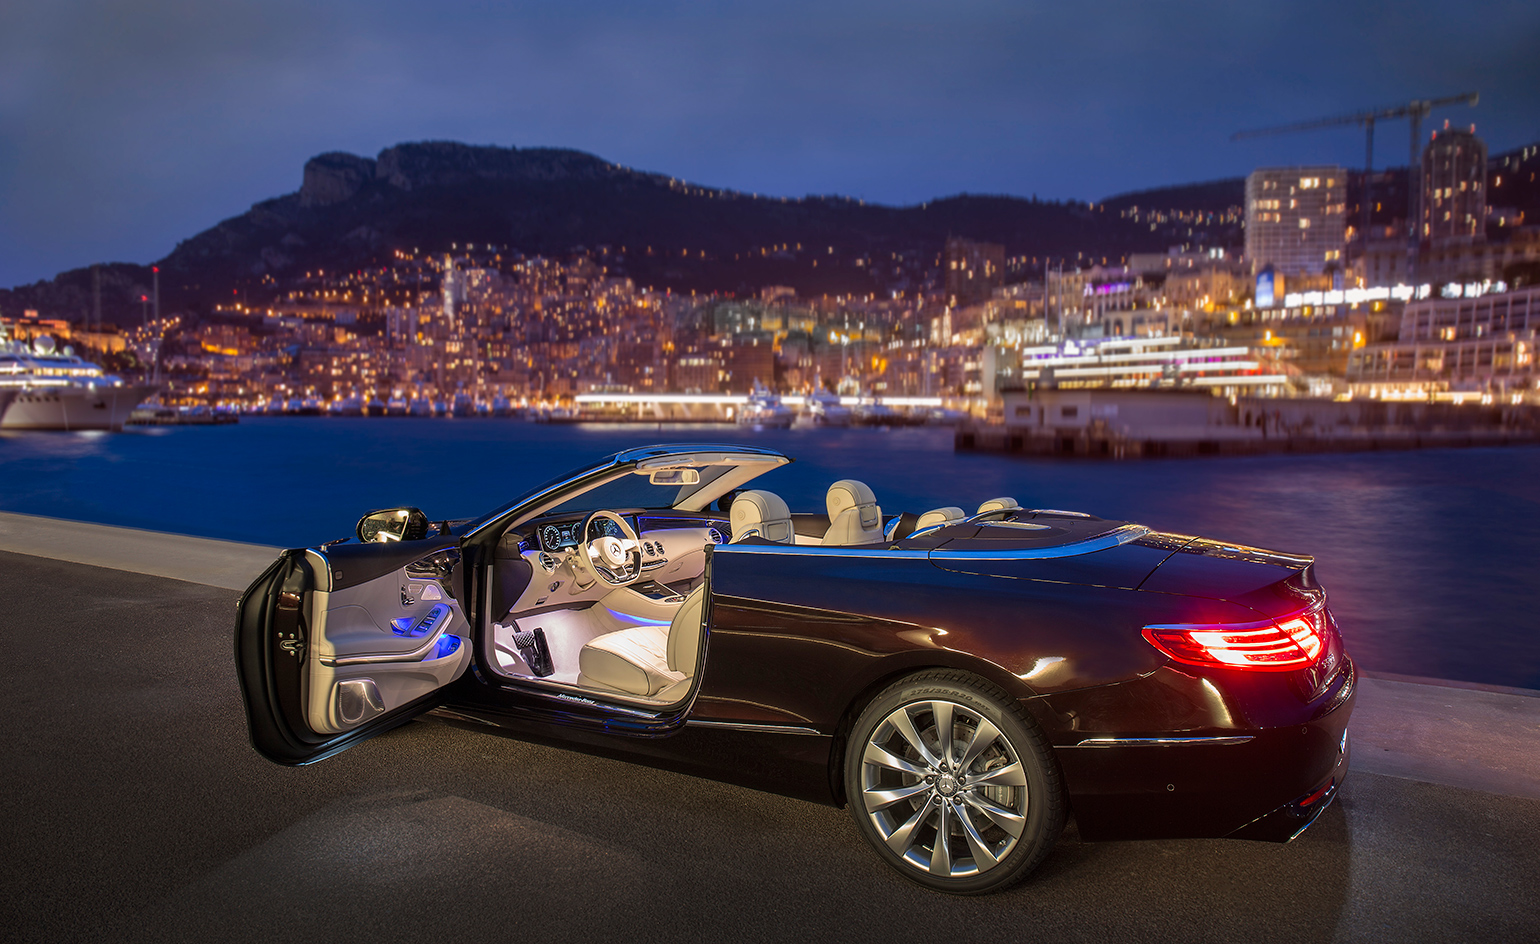 Mercedes benz present the s class cabriolet wallpaper for Drop top mercedes benz prices